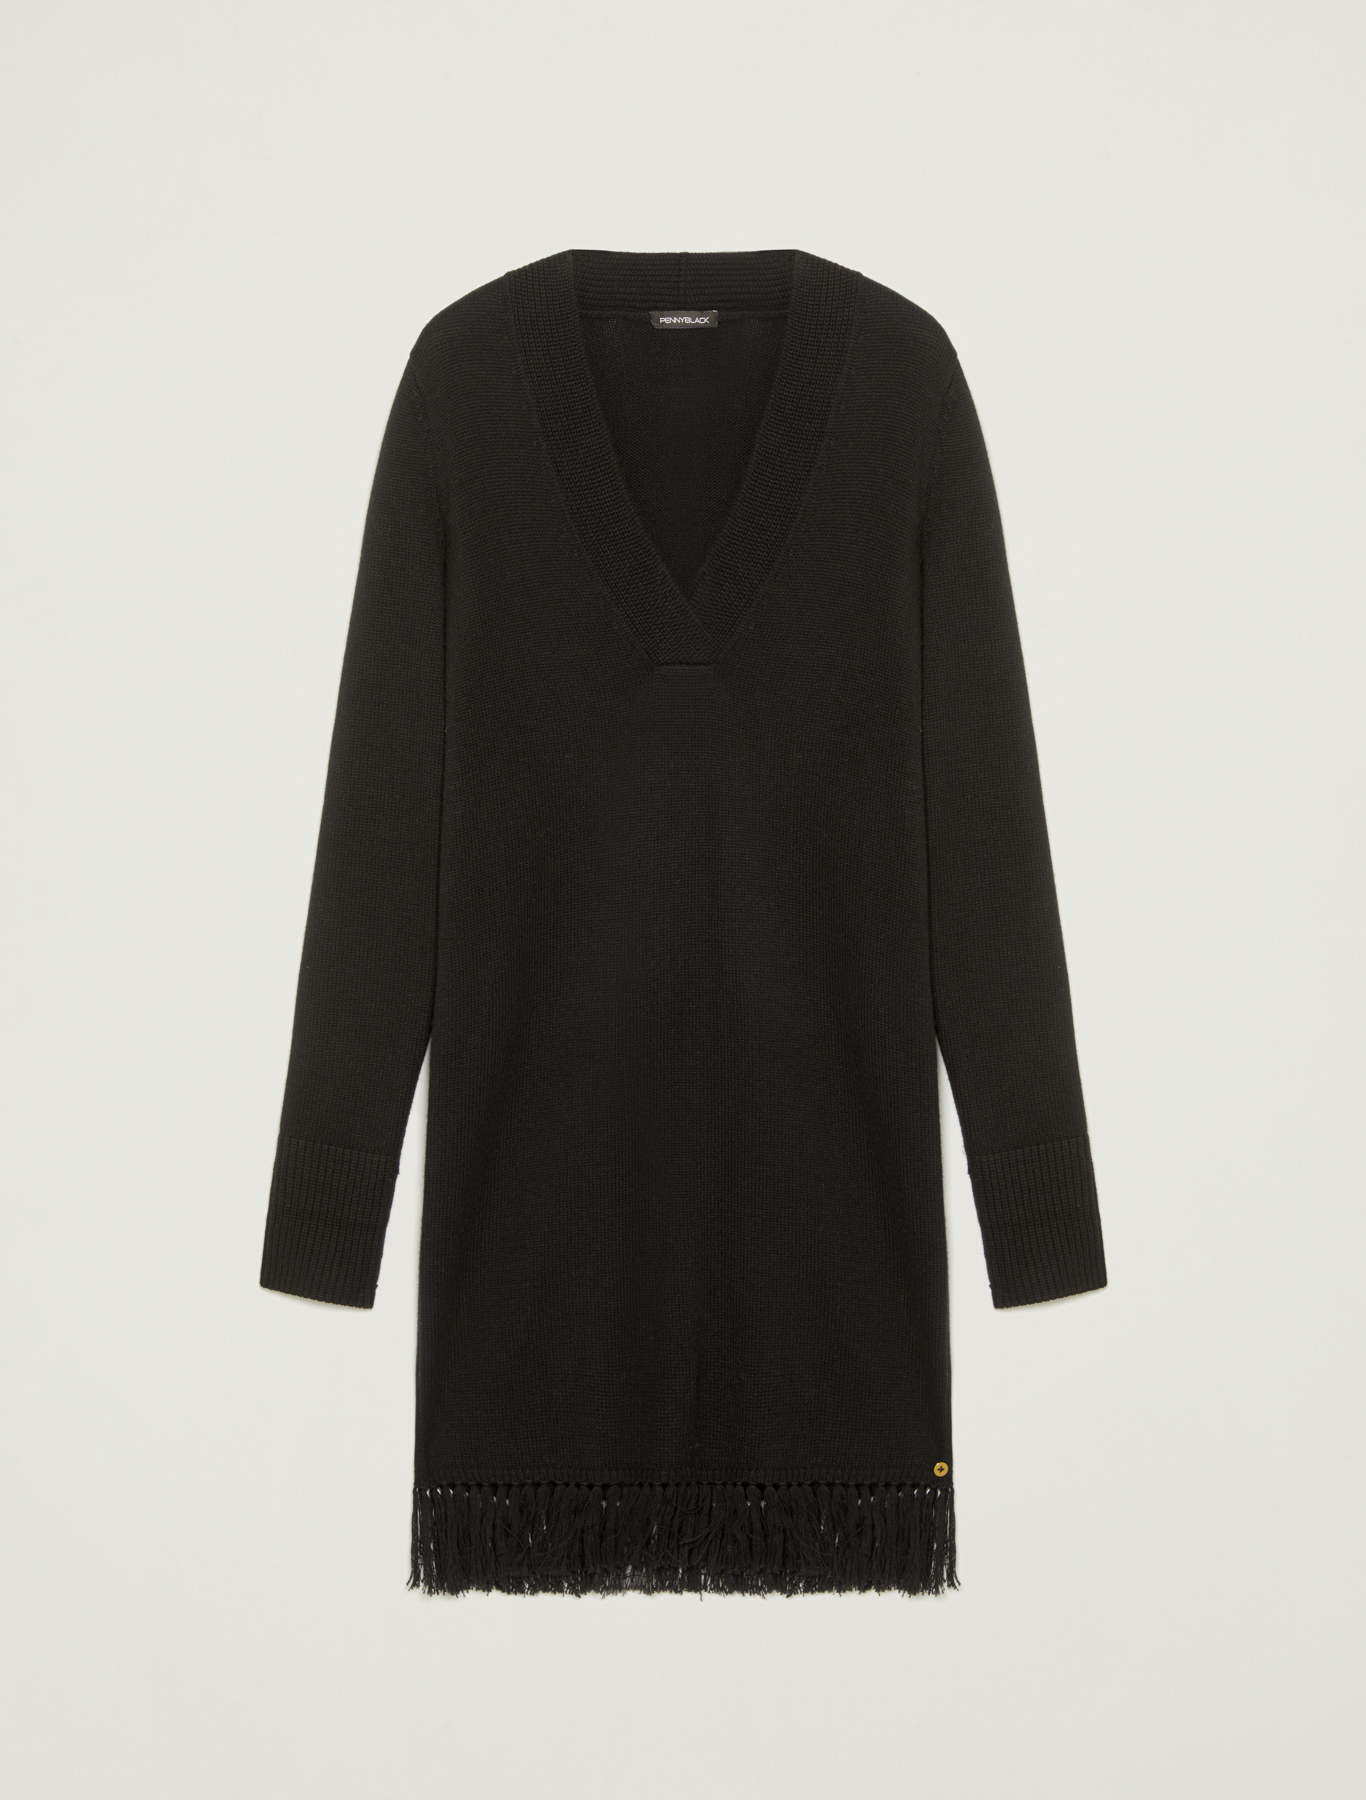 Fringed knit dress - black - pennyblack